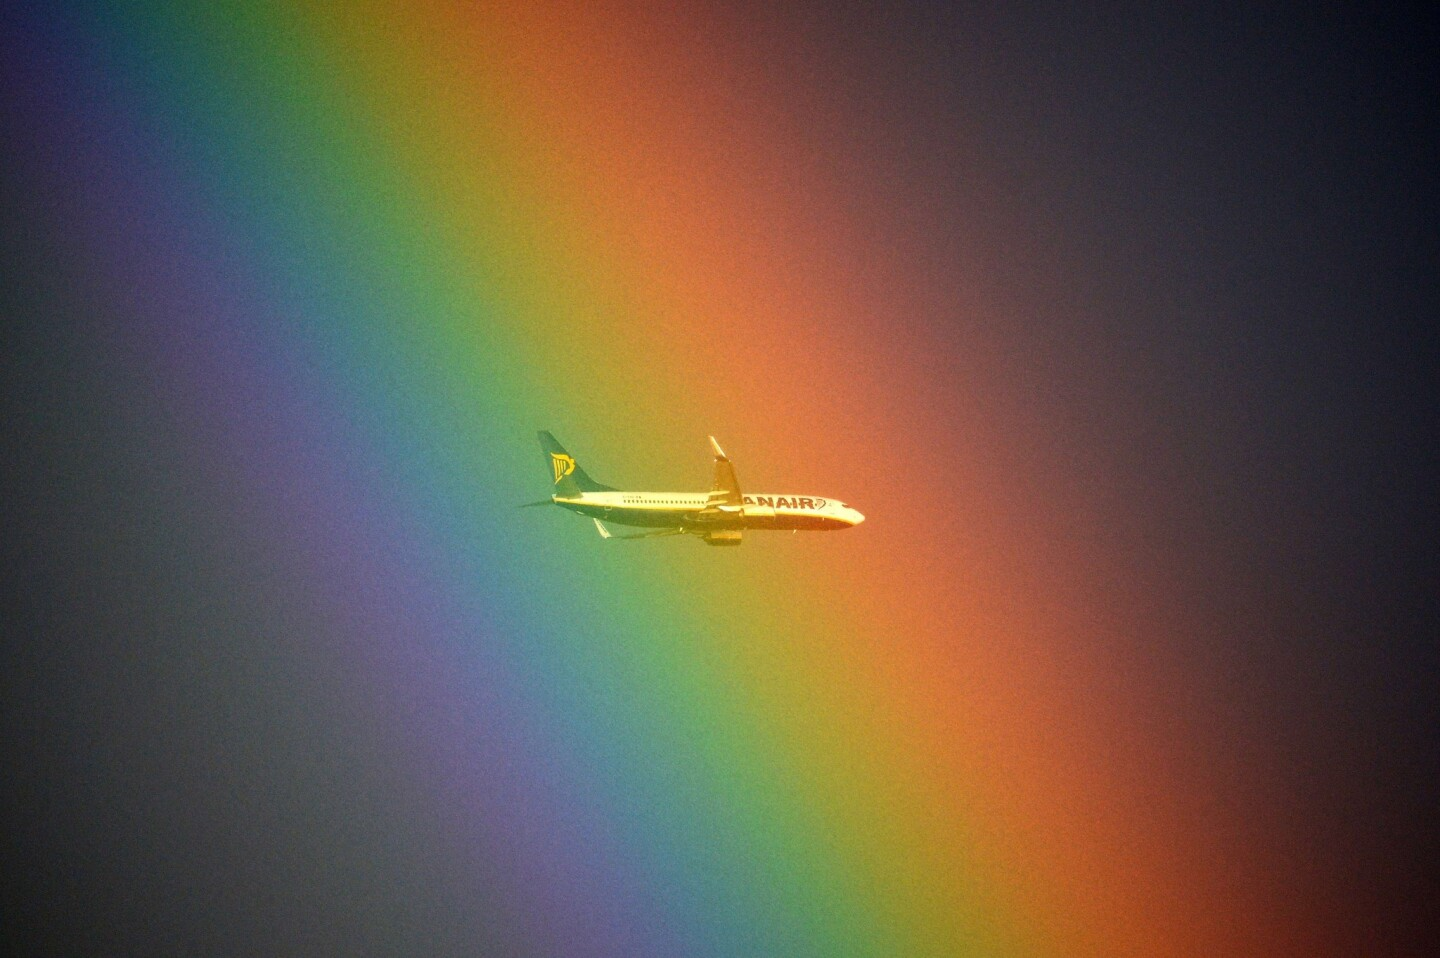 A Ryanair plane flies in front of a rainbow over Rome.